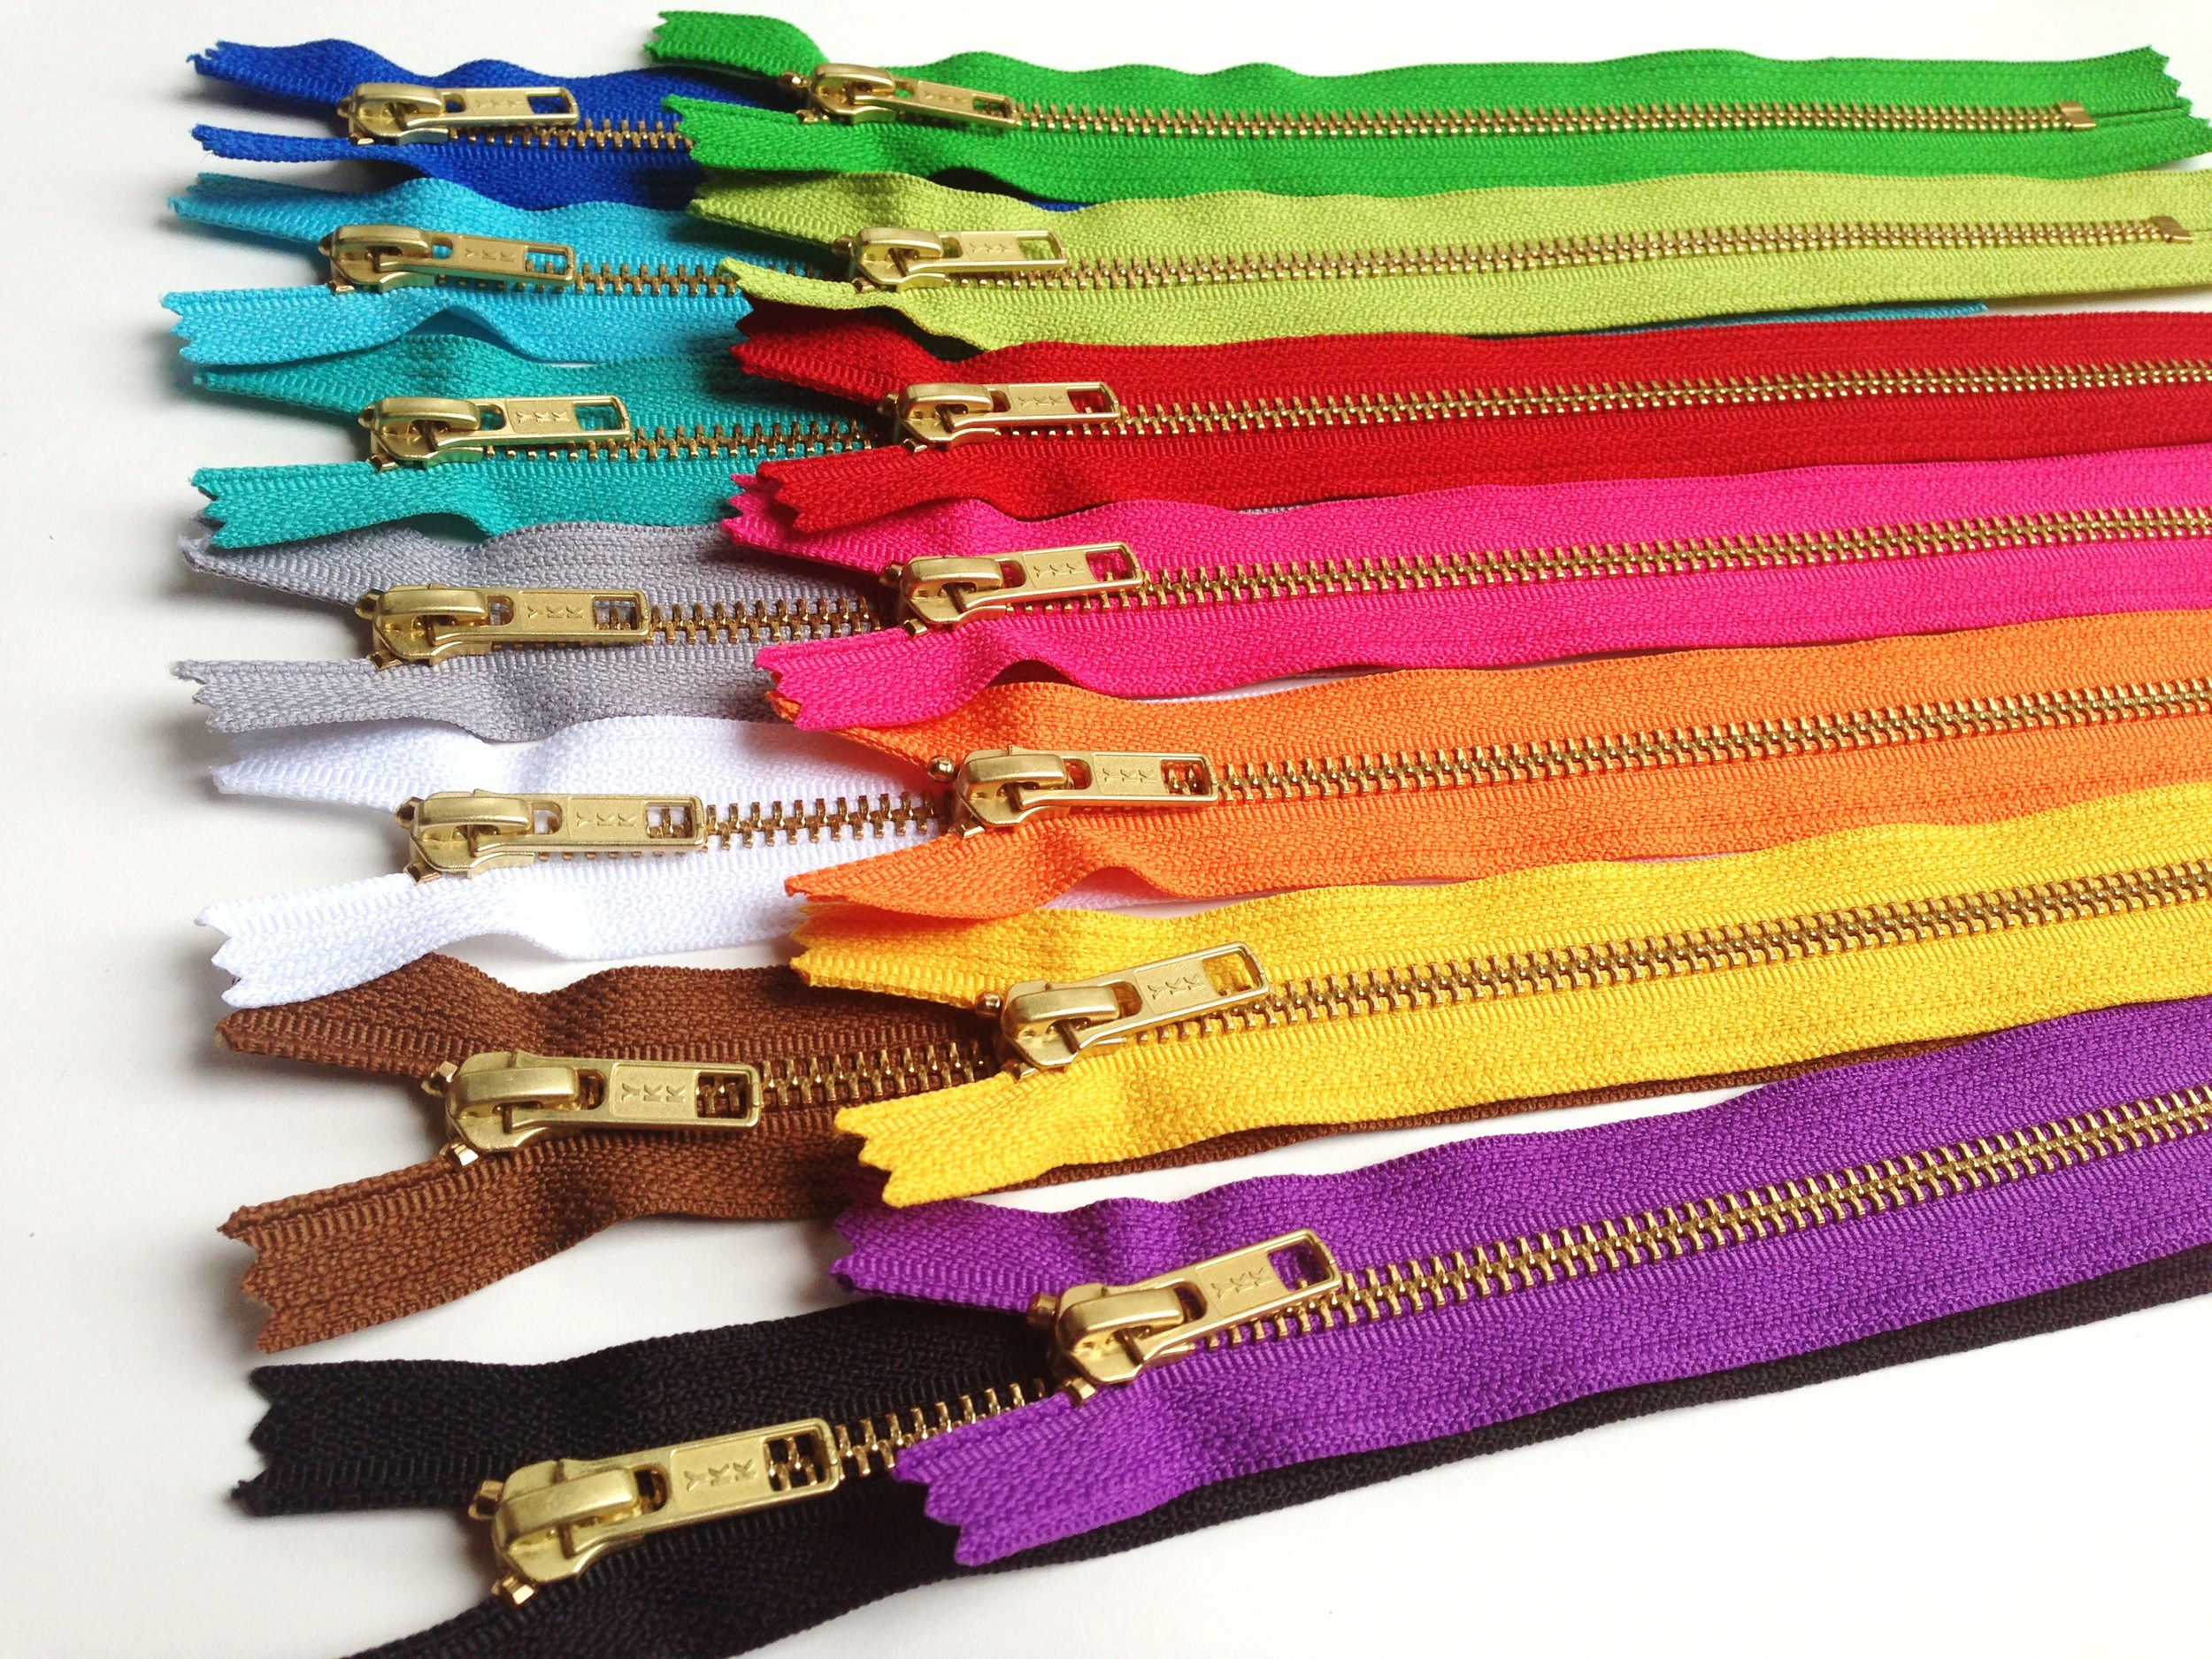 metal zippers in bulk.JPG